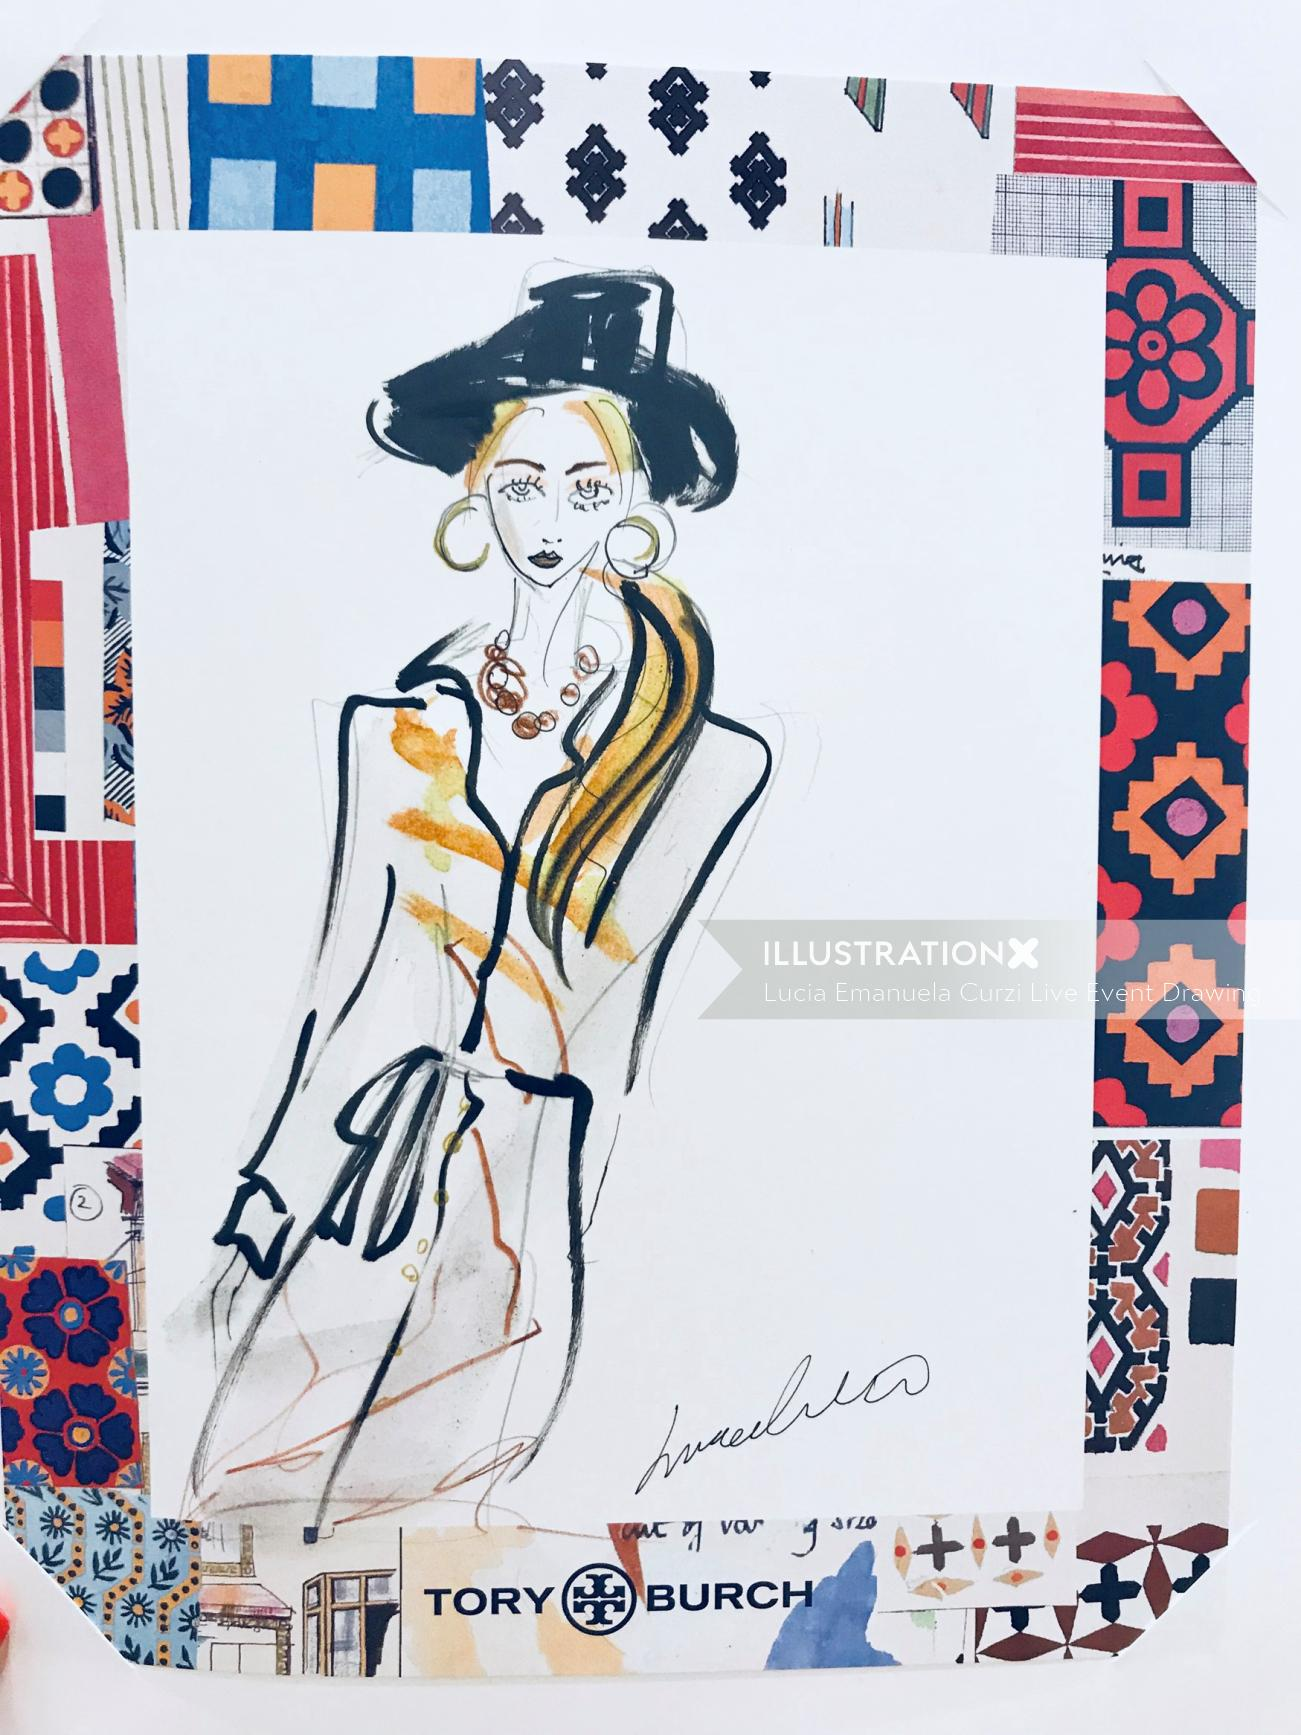 Live event drawing Tory Burch fashion